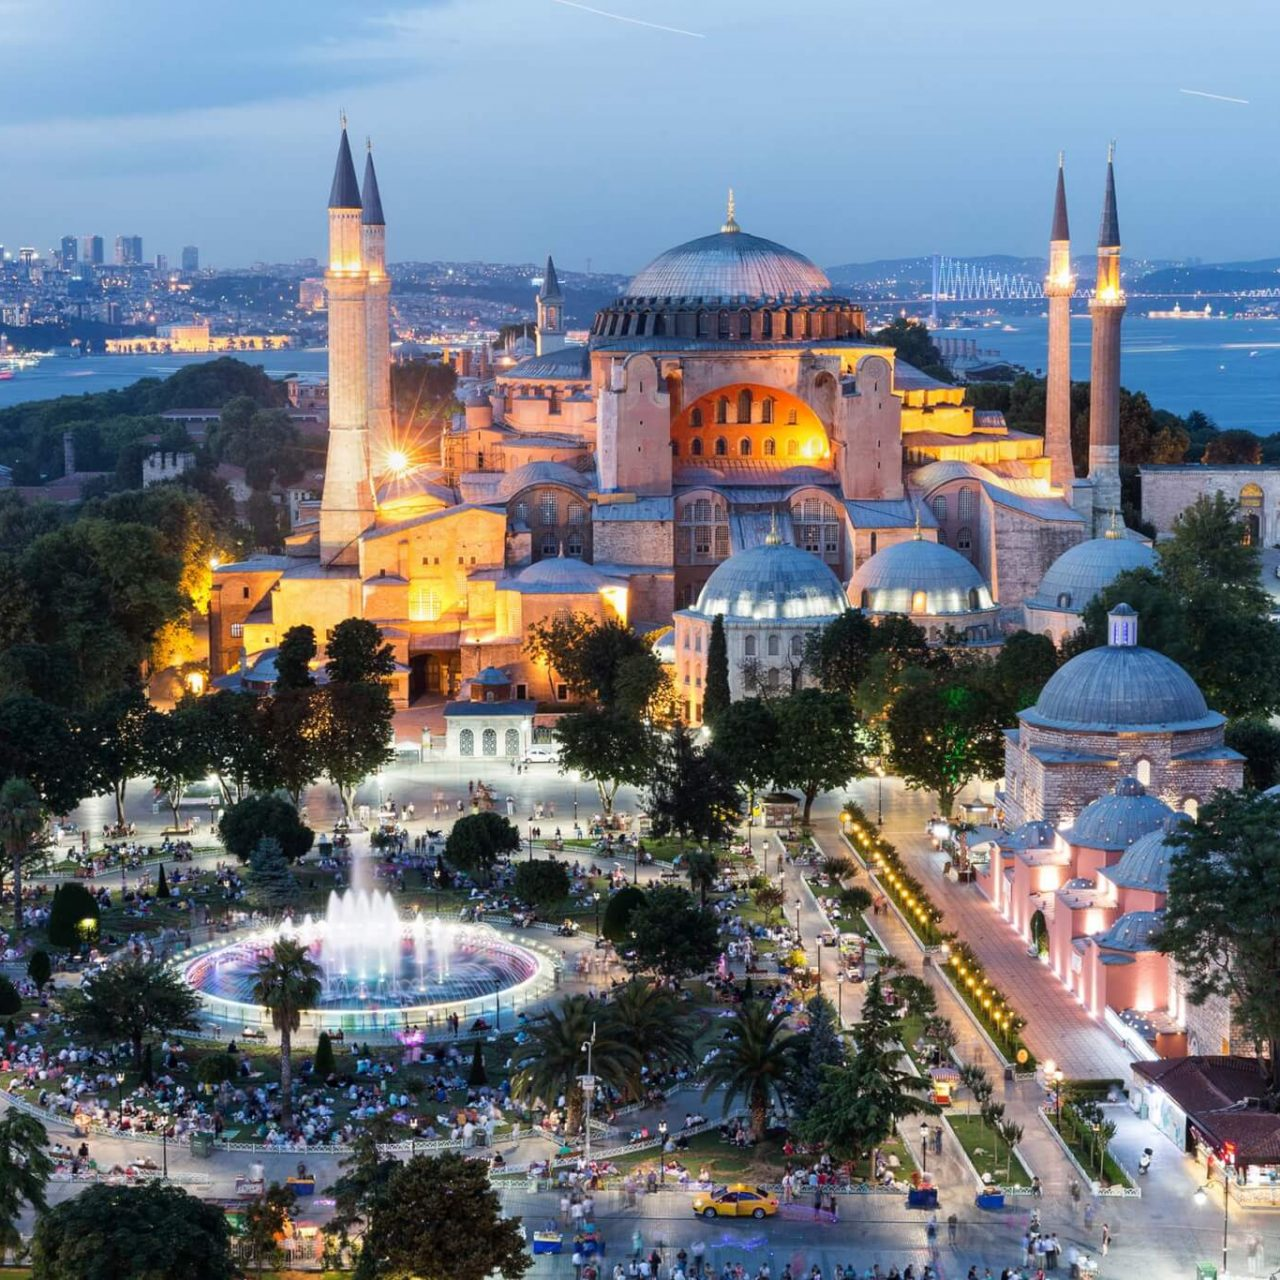 https://travelicious.bold-themes.com/main-demo/wp-content/uploads/sites/2/2018/09/destination-istanbul-02-1280x1280.jpg